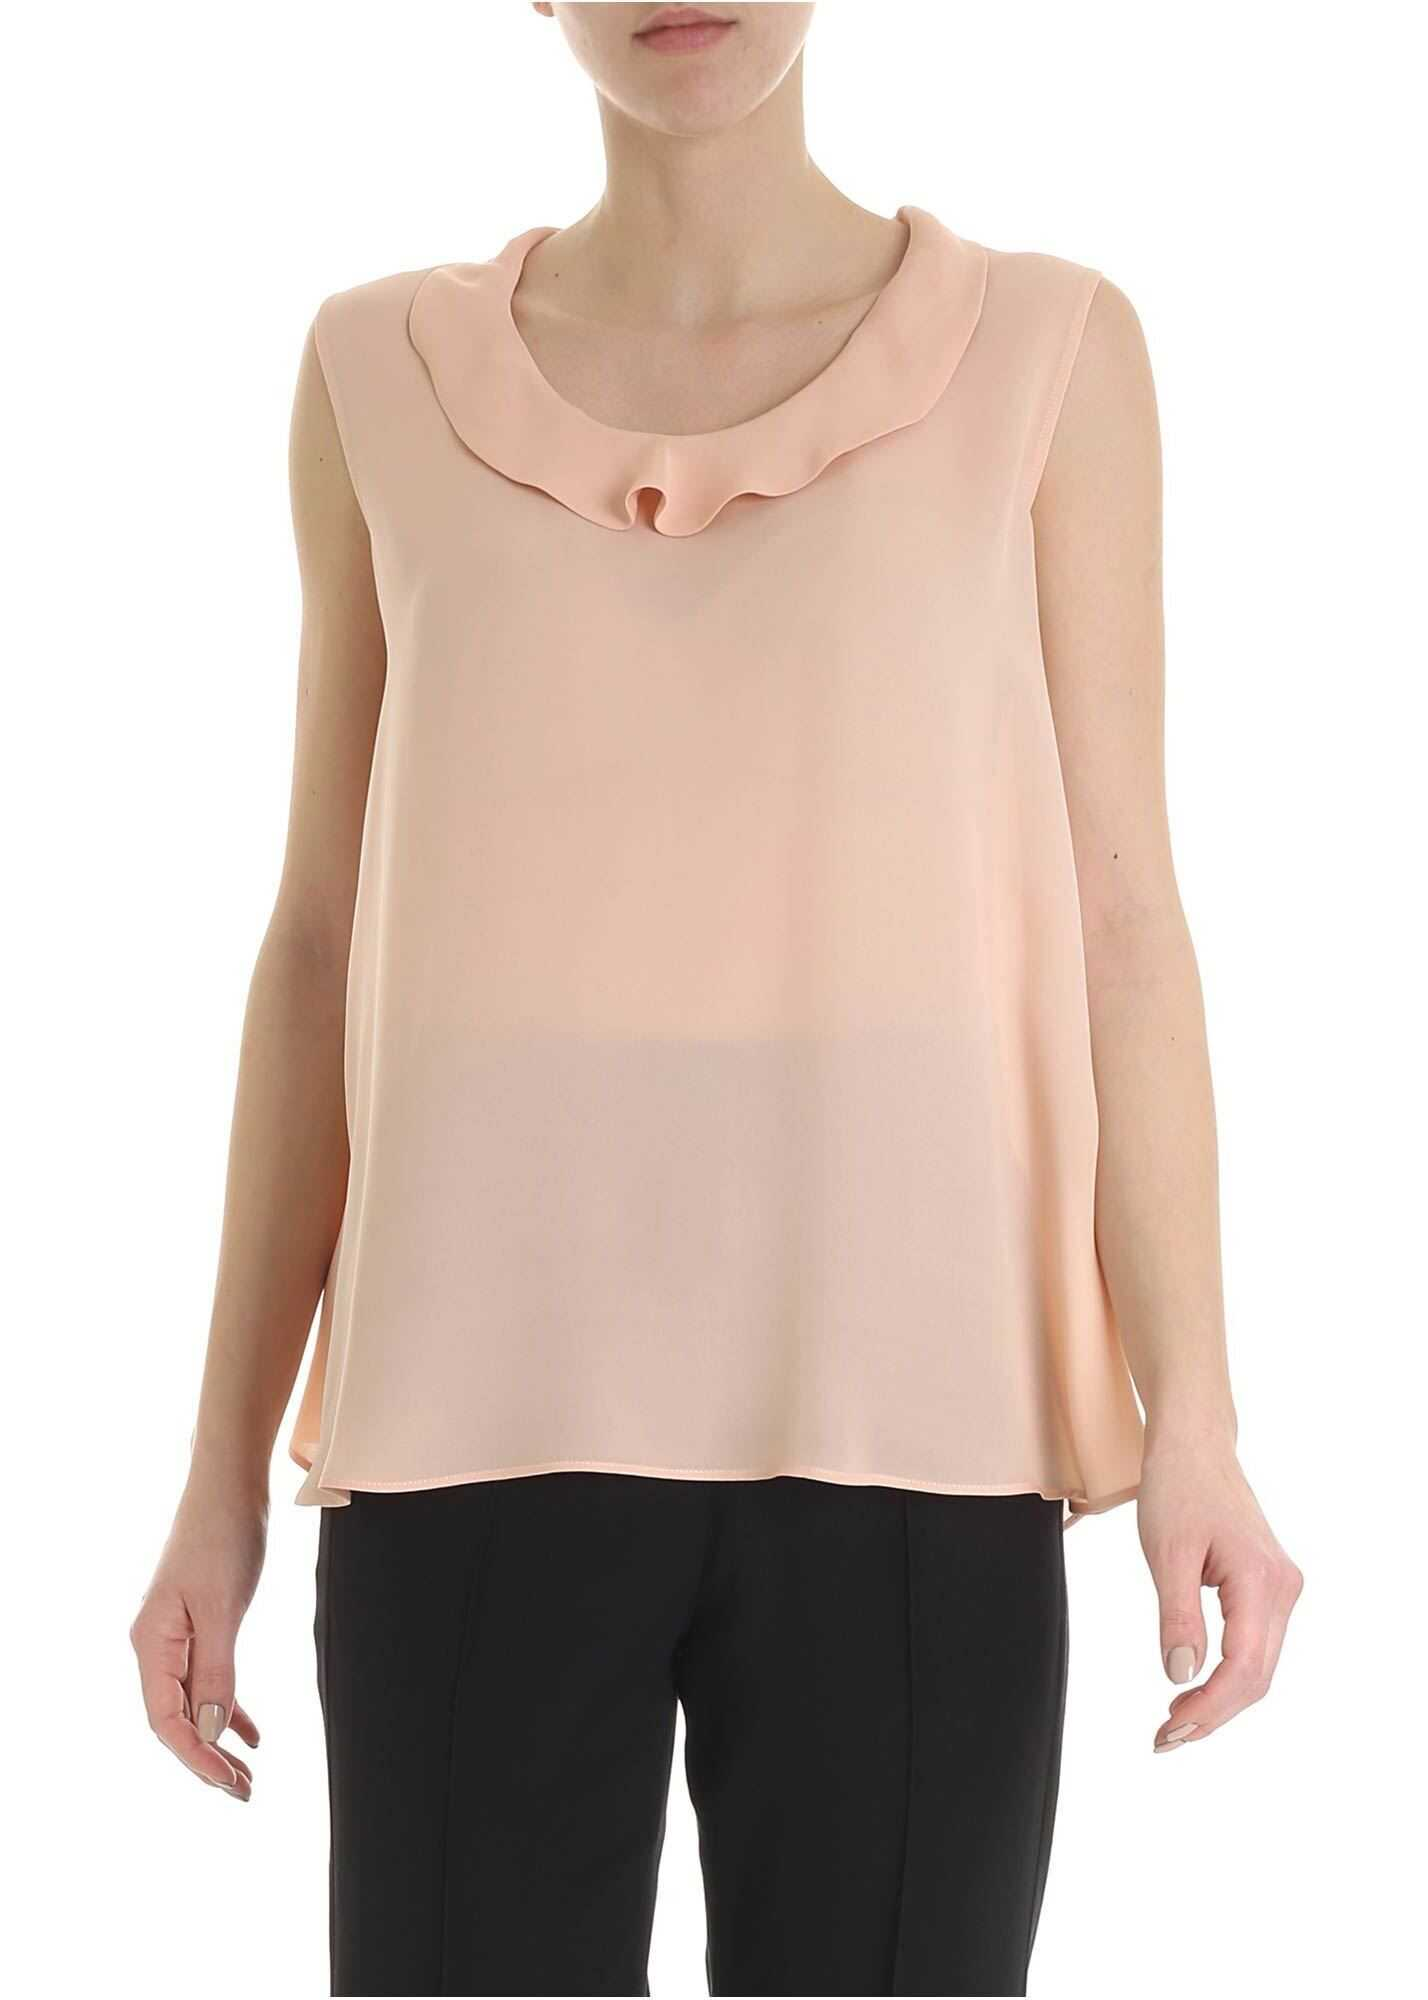 ETRO Etro Top In Peach Pink Color With Ruffles